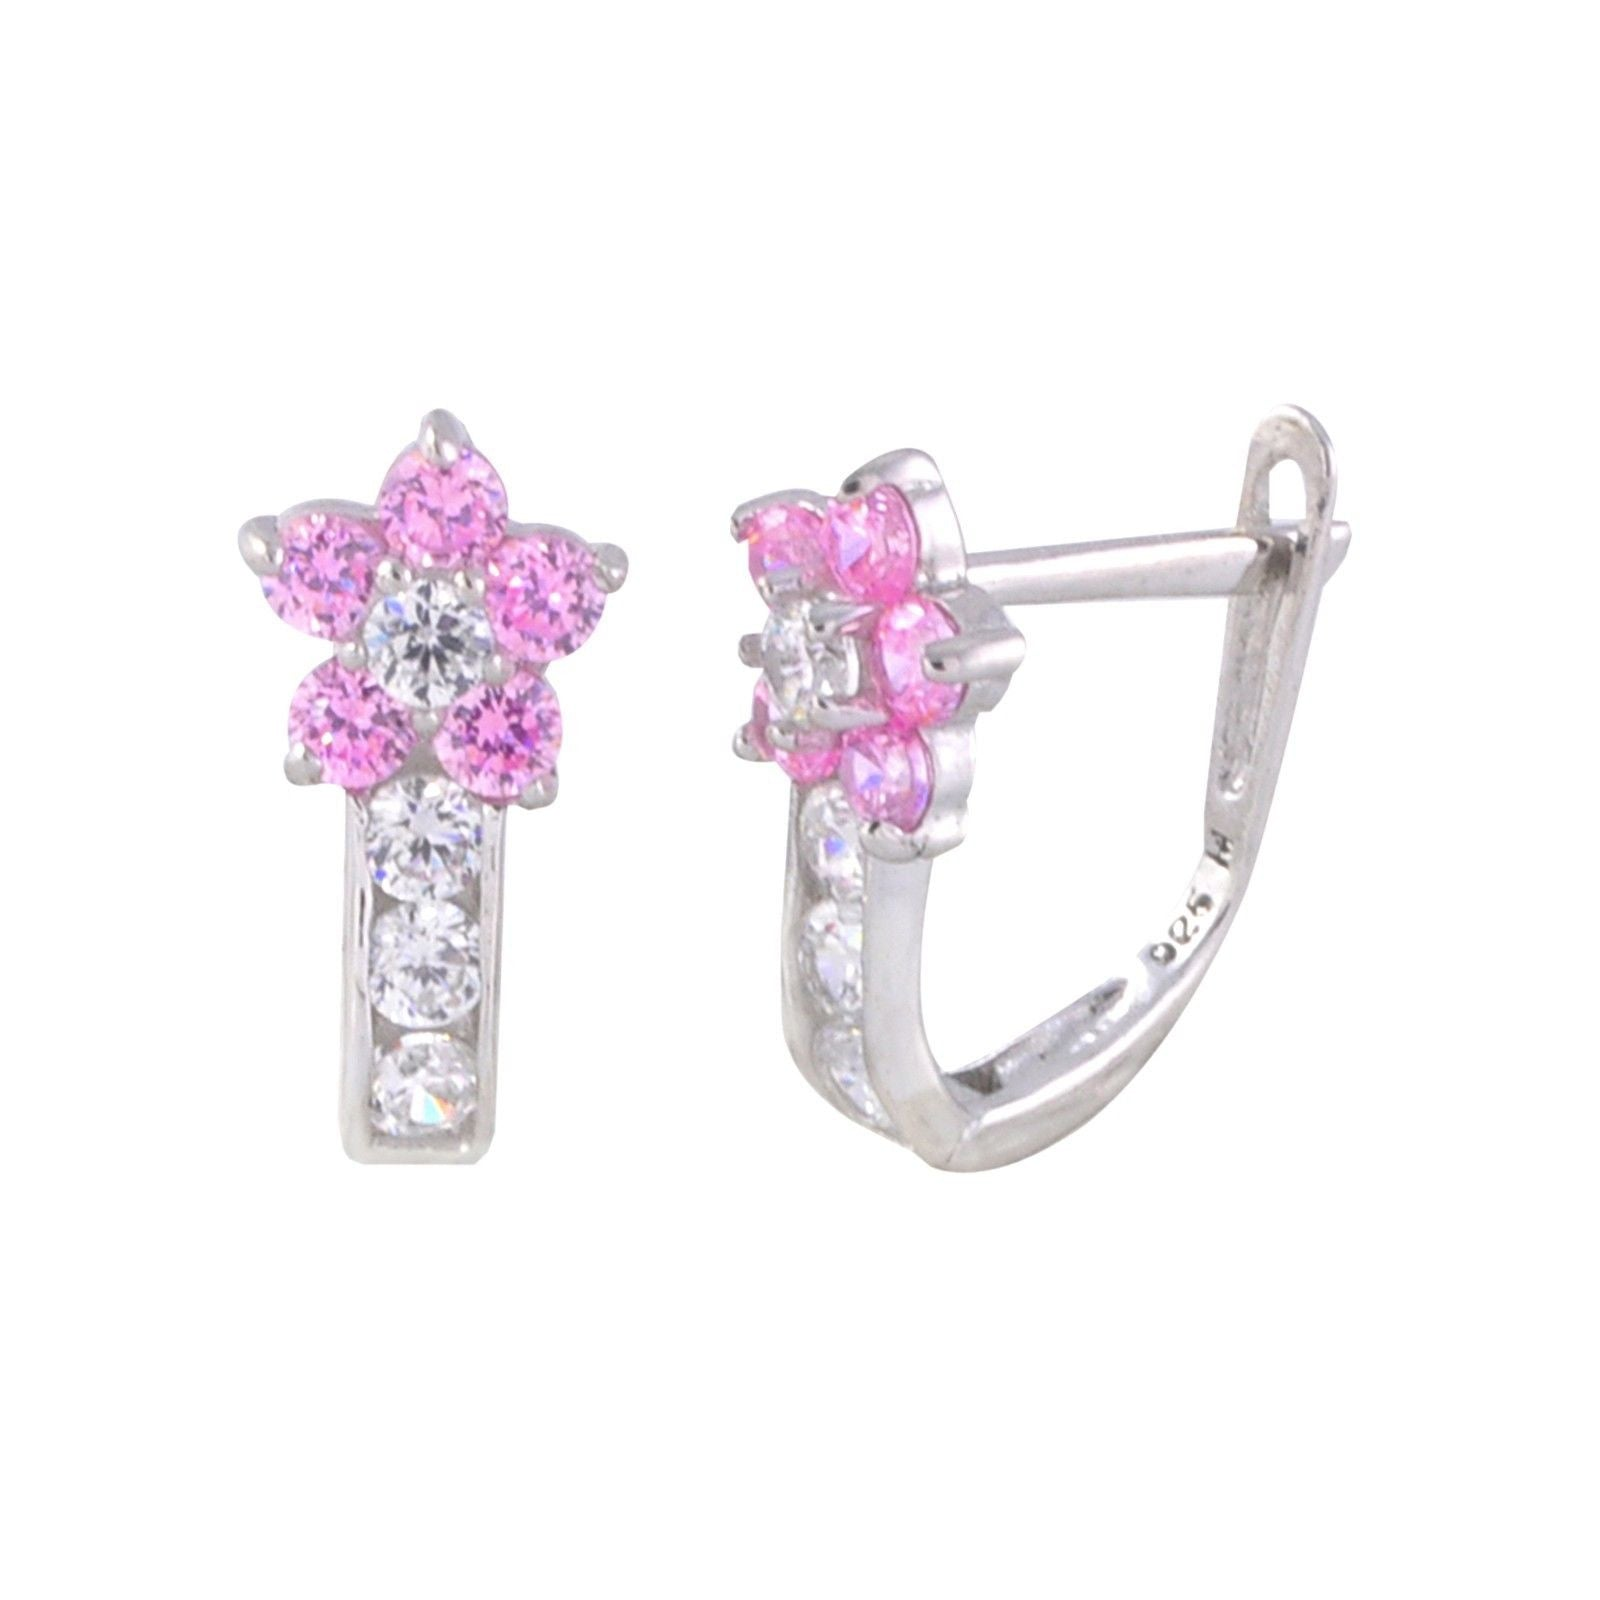 Sterling Silver Leverback Earrings Flower Cz Birthstone Colors  2 Color  Design